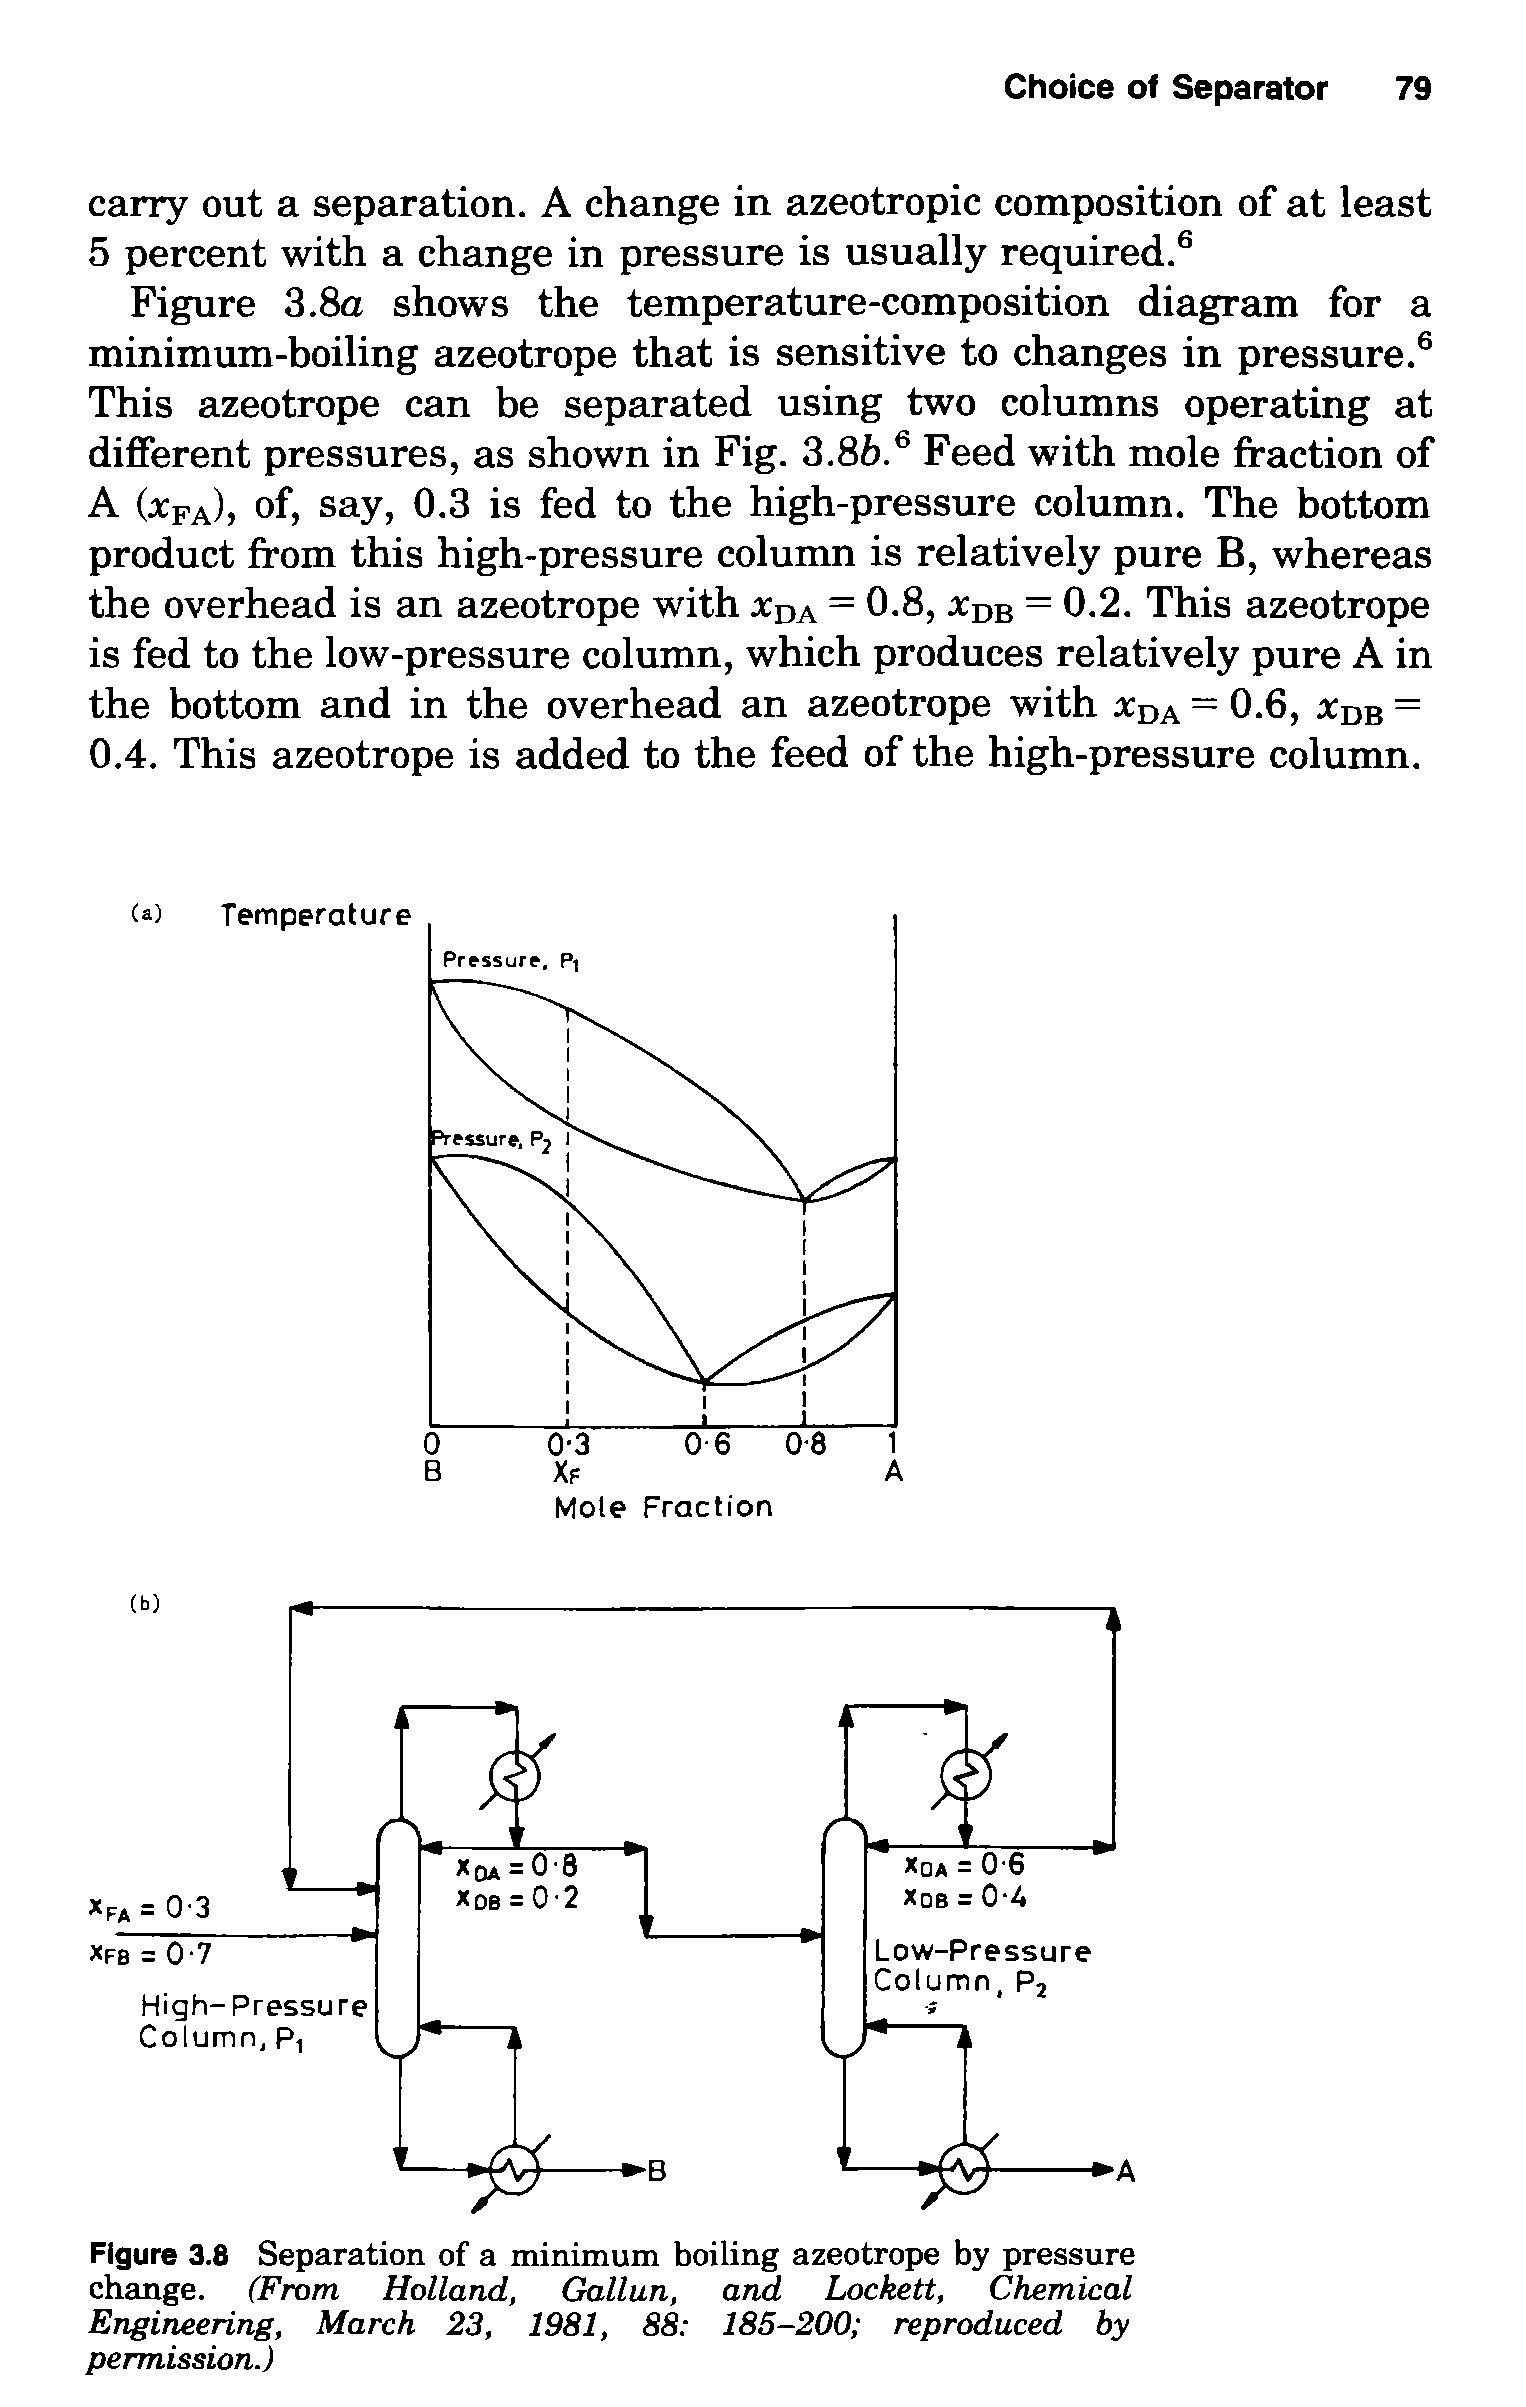 "Figure 3.8 Separation of a <a href=""/info/azeotrope_minimum_boiling"">minimum boiling azeotrope</a> by <a href=""/info/pressure_change"">pressure change</a>. (From Holland, Gallun, and Lockett, Chemical Engineering, March 23, 1981, 88 185-200 reproduced by permission.)"